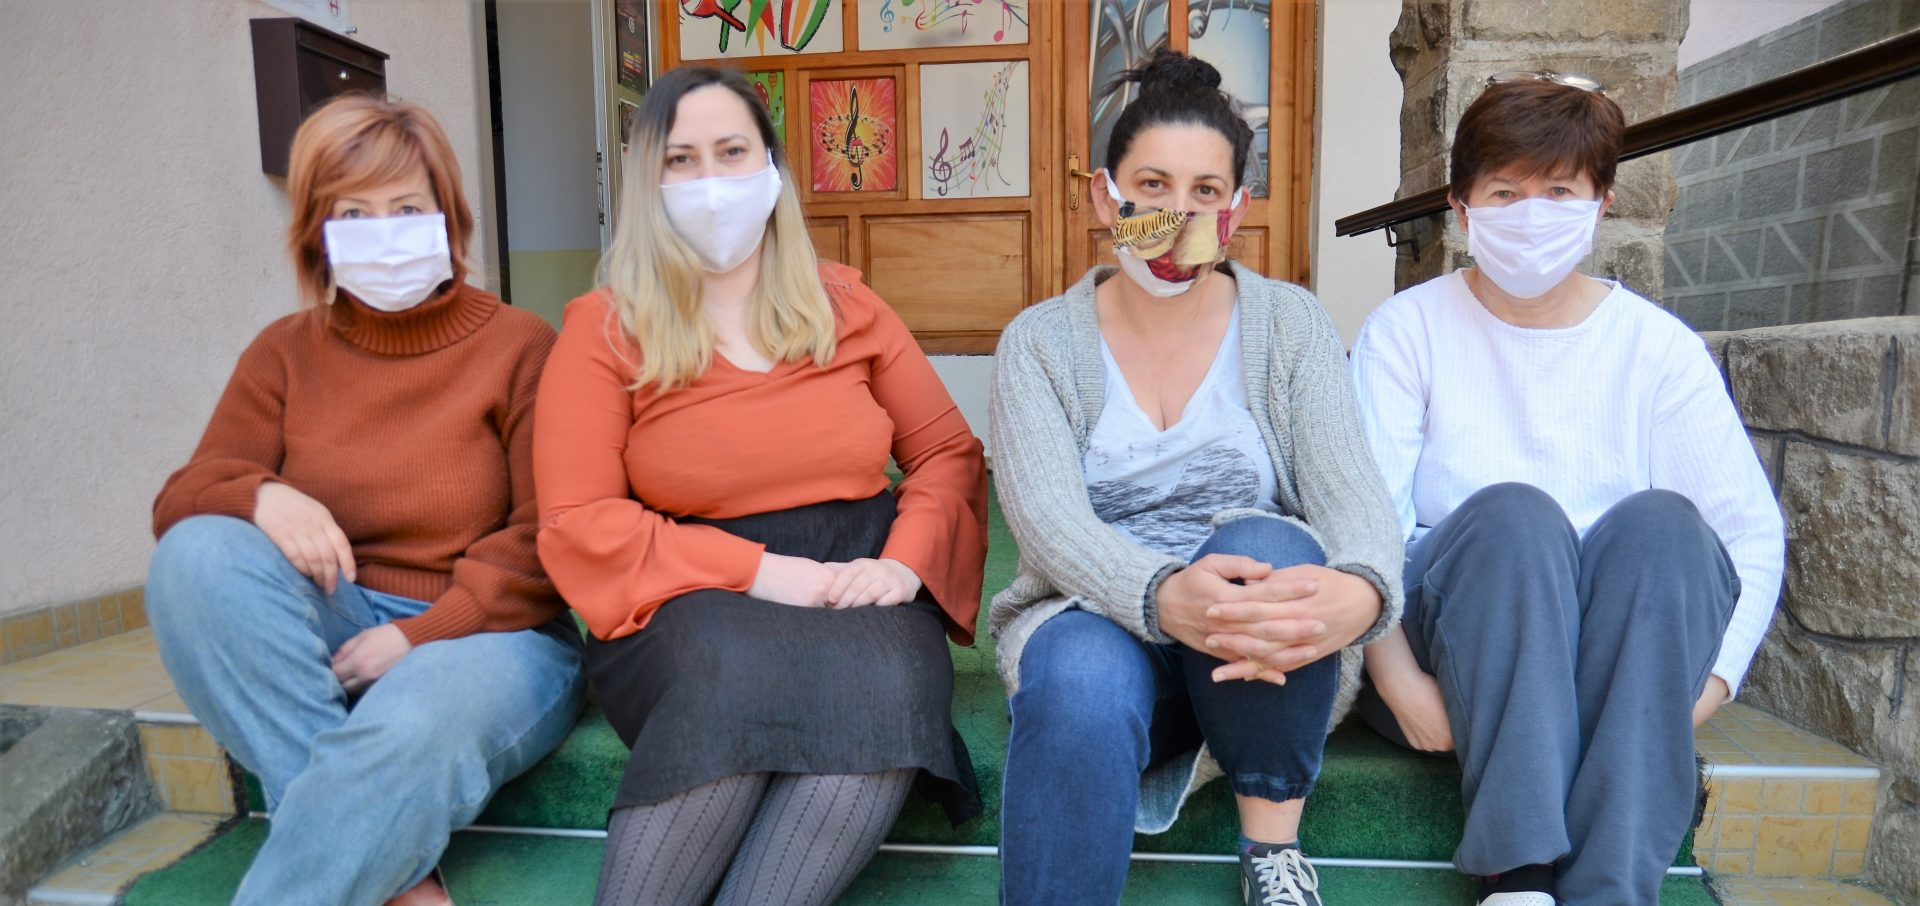 Women's cooperative in Srebrenica produces 'protective masks for everyone'